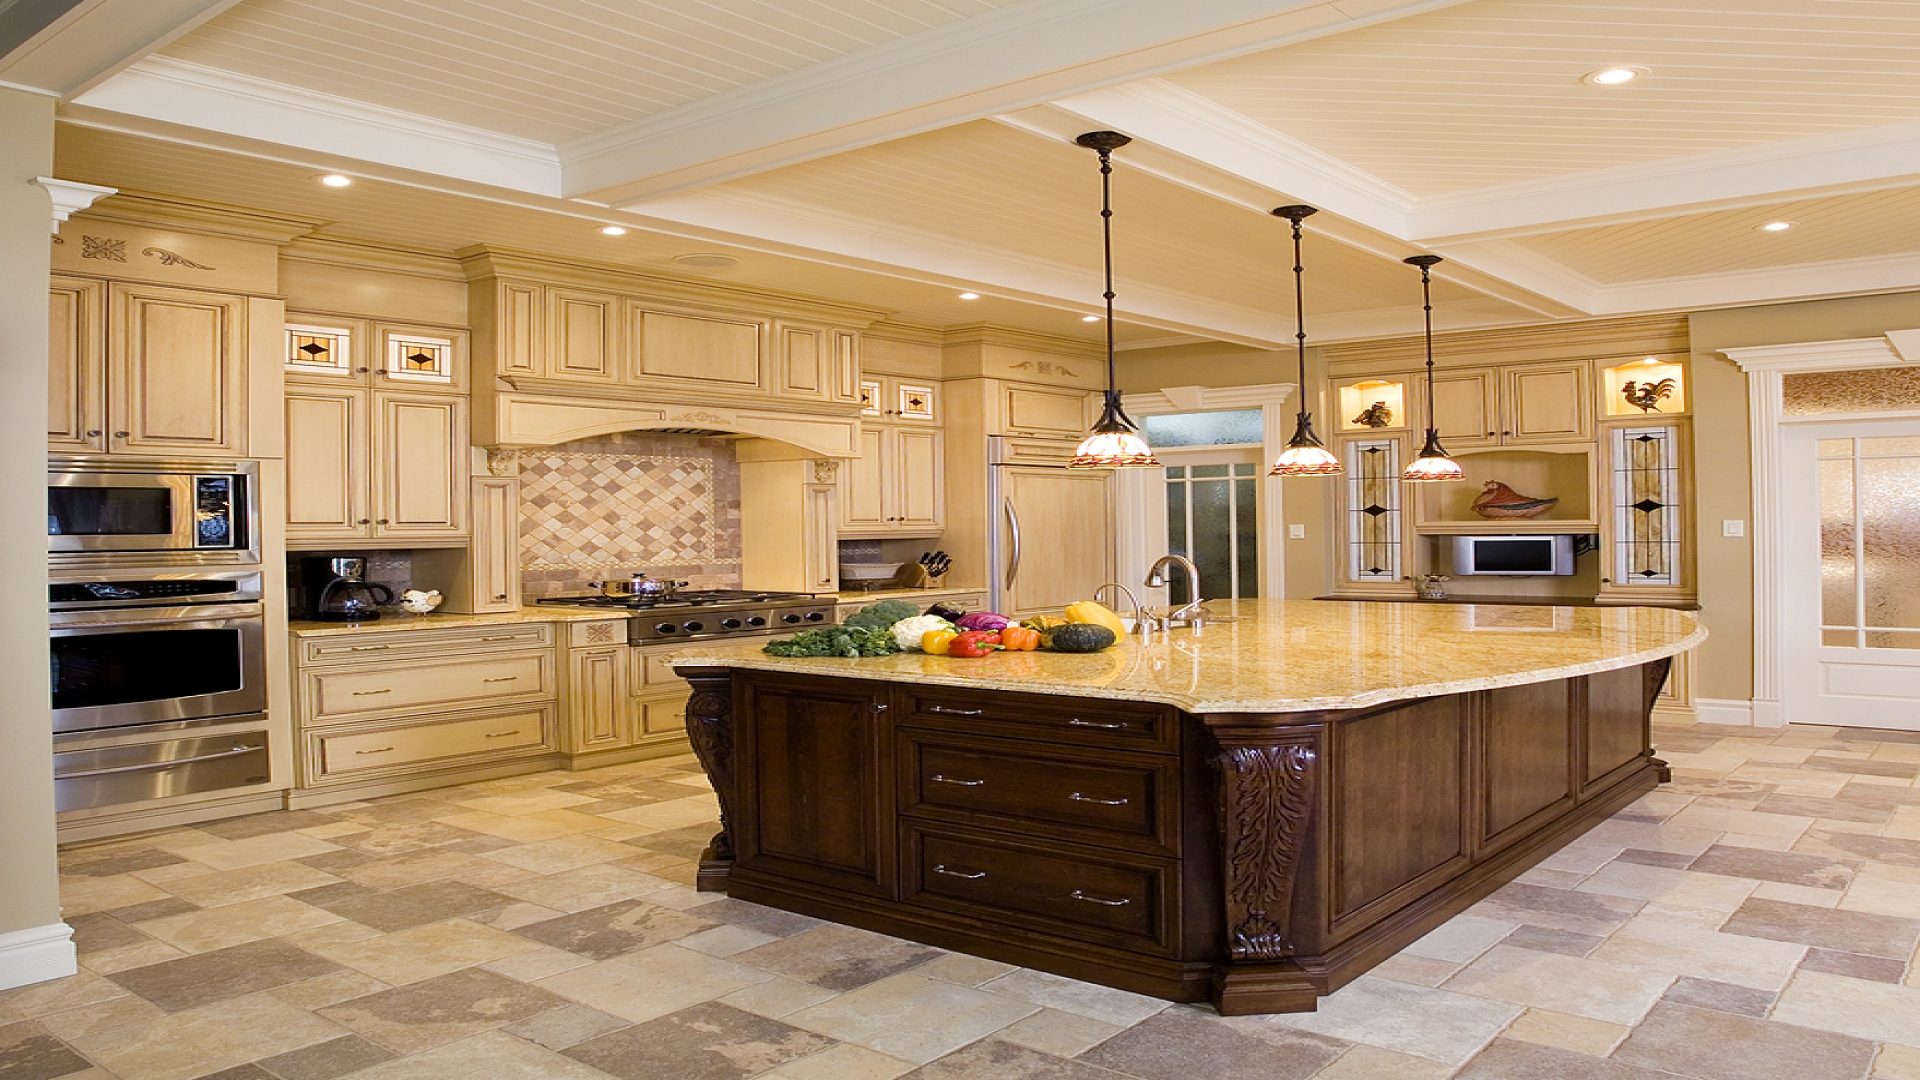 Kitchen remodeling ideas pictures photos Home improvement ideas kitchen